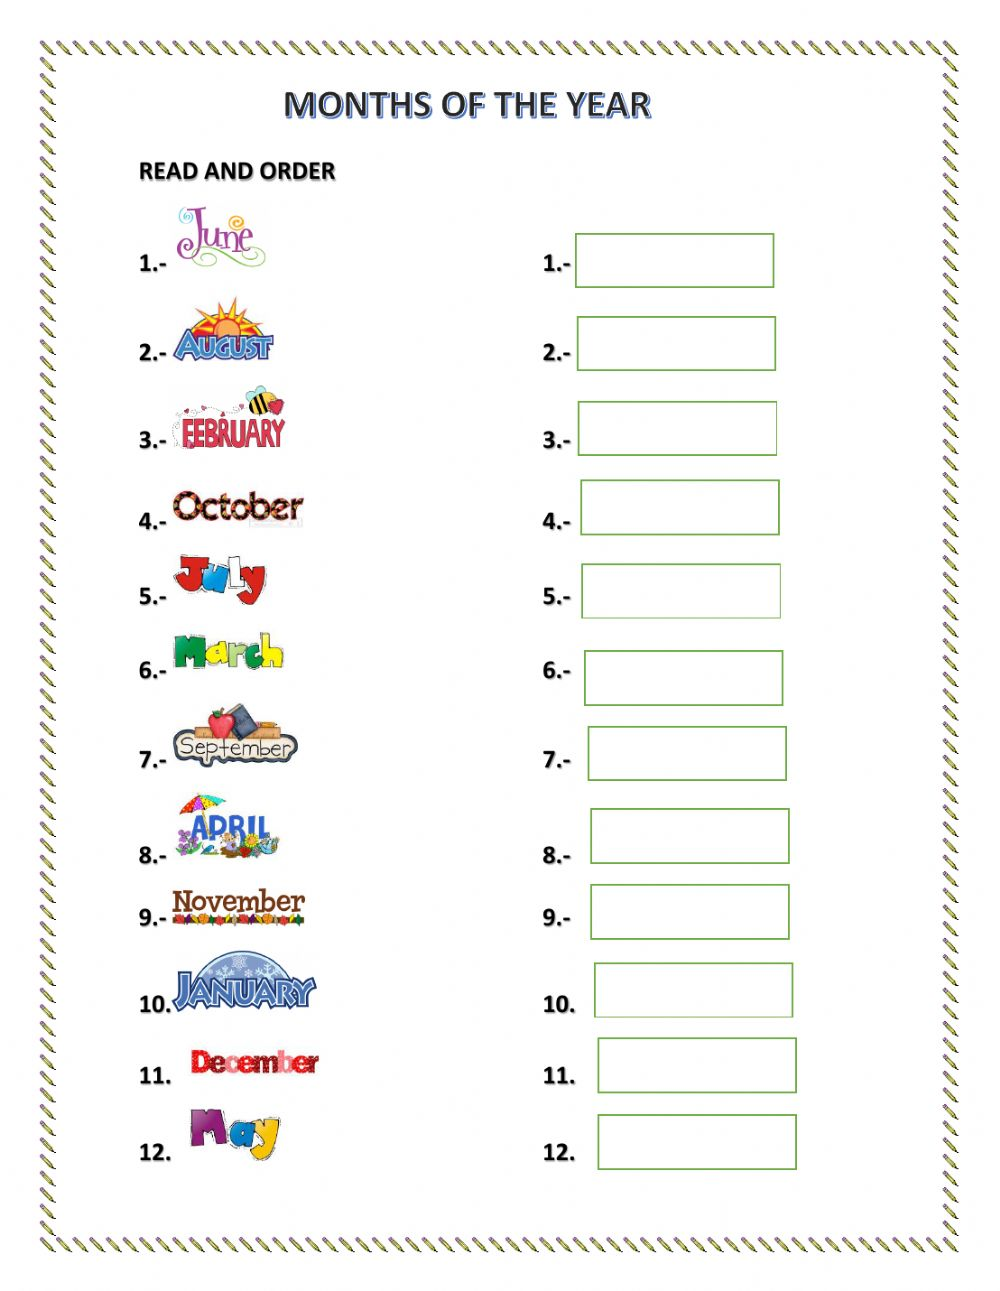 Worksheets Months Of The Year Worksheets spelling months of the year free printable worksheets worksheetfun 1 worksheet